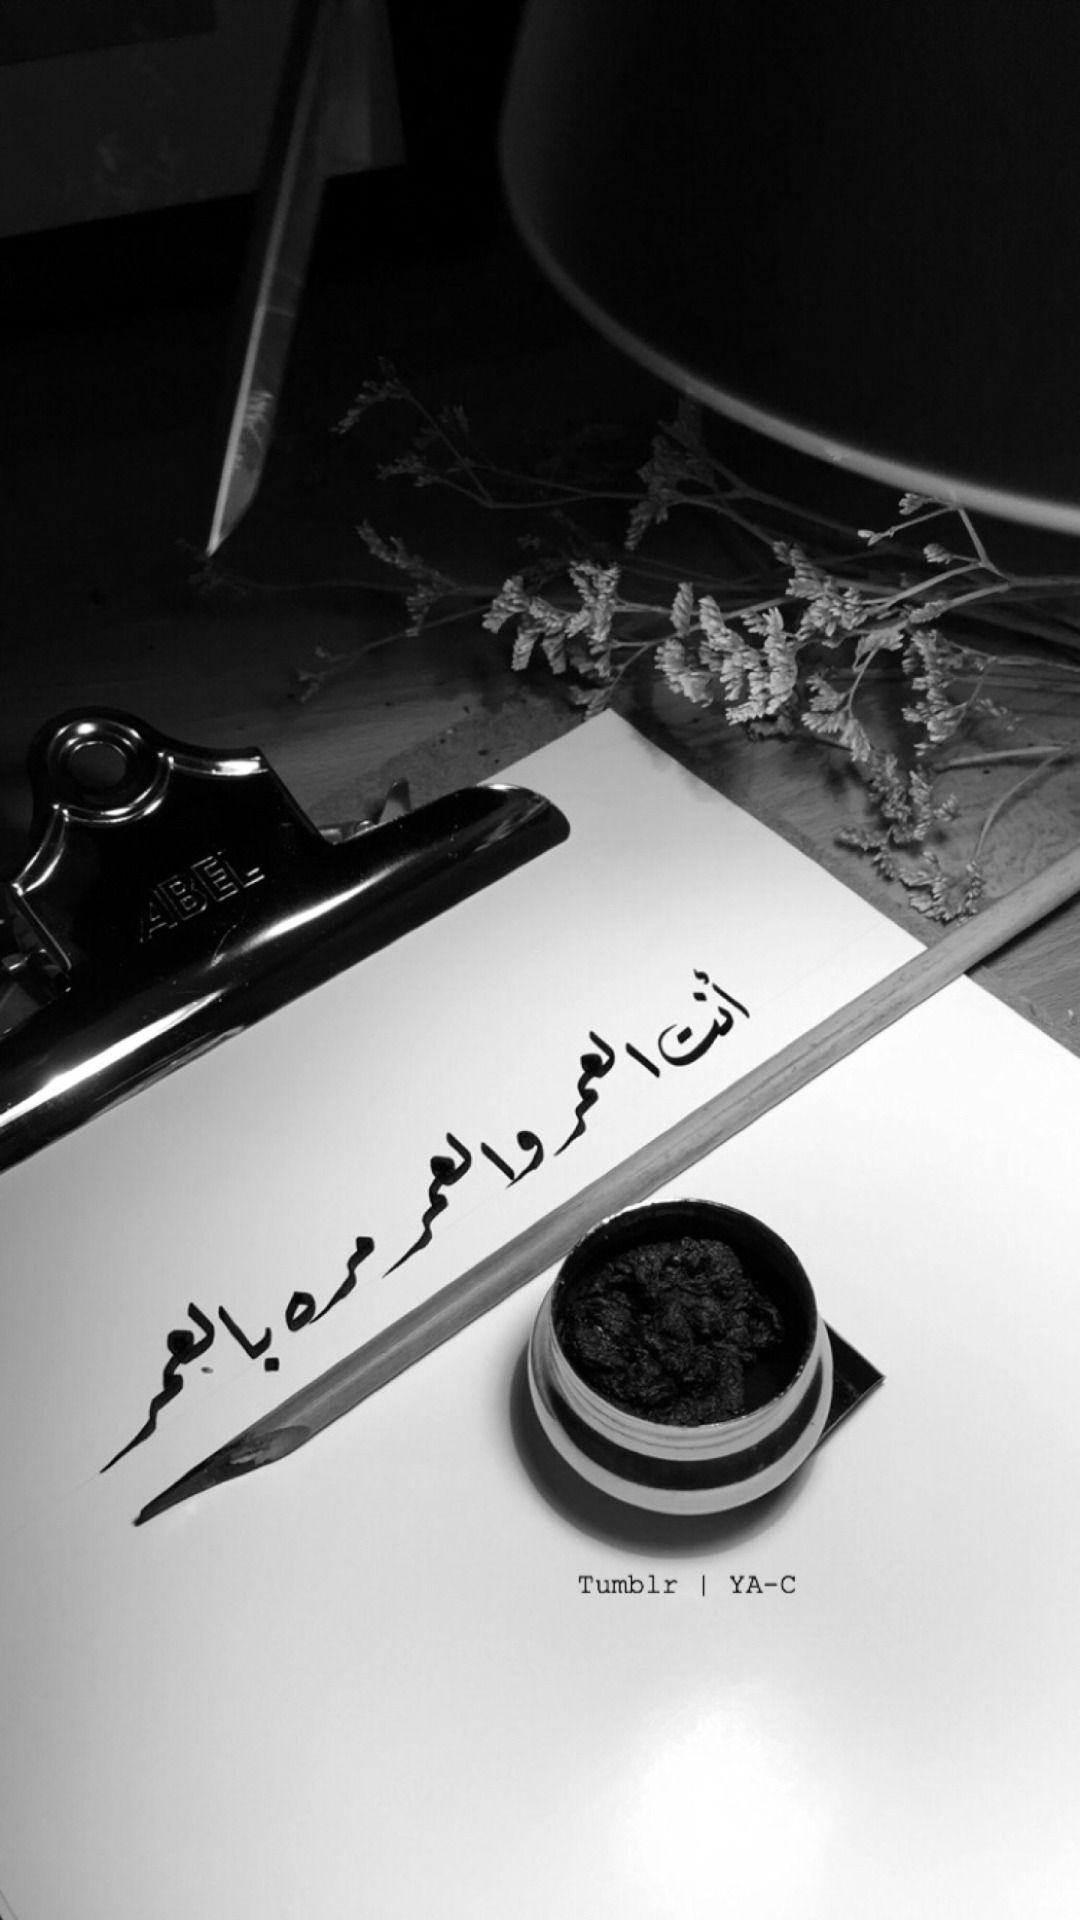 Pin By Nader Njm On عربي Arabic Arabic Quotes Romantic Quotes Love Words